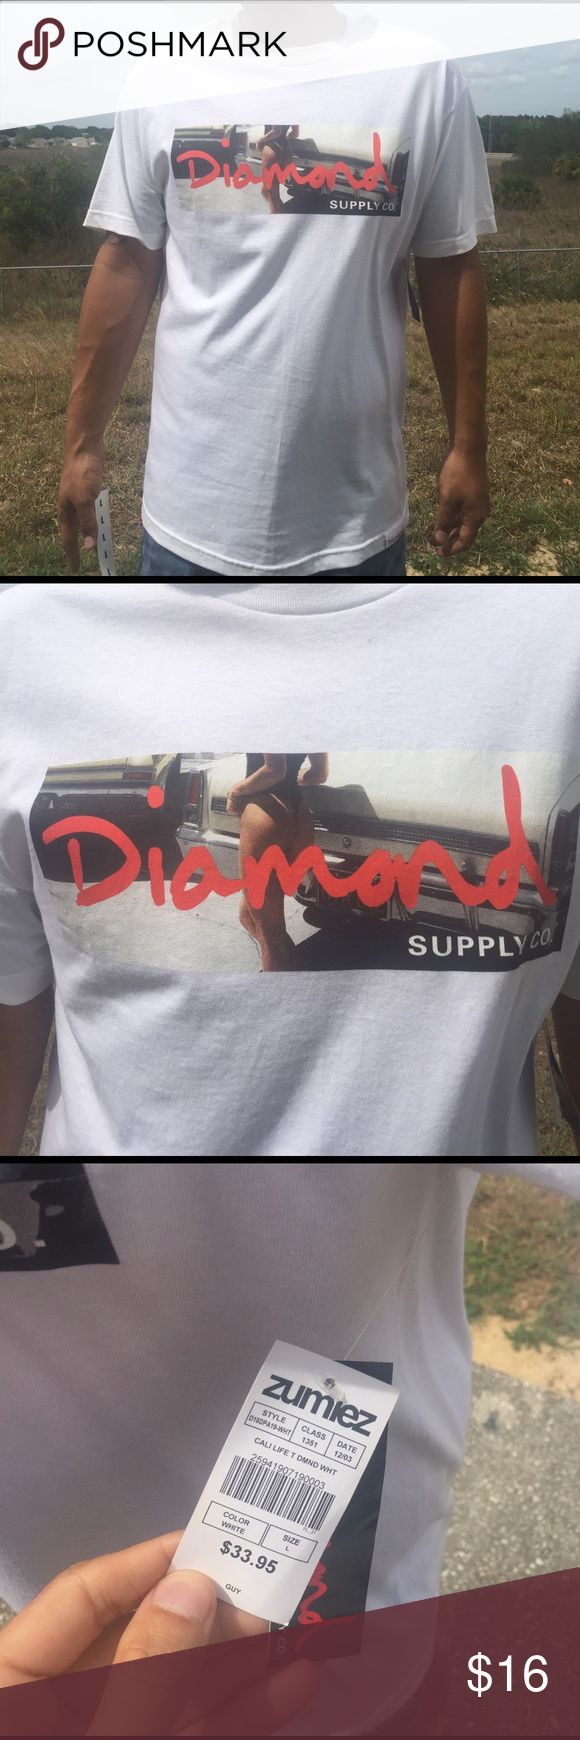 New Men's Diamond Cruiser tee Great quality brand new NWT men's cali life diamond supply company tee Diamond Supply Co. Shirts Tees - Short Sleeve